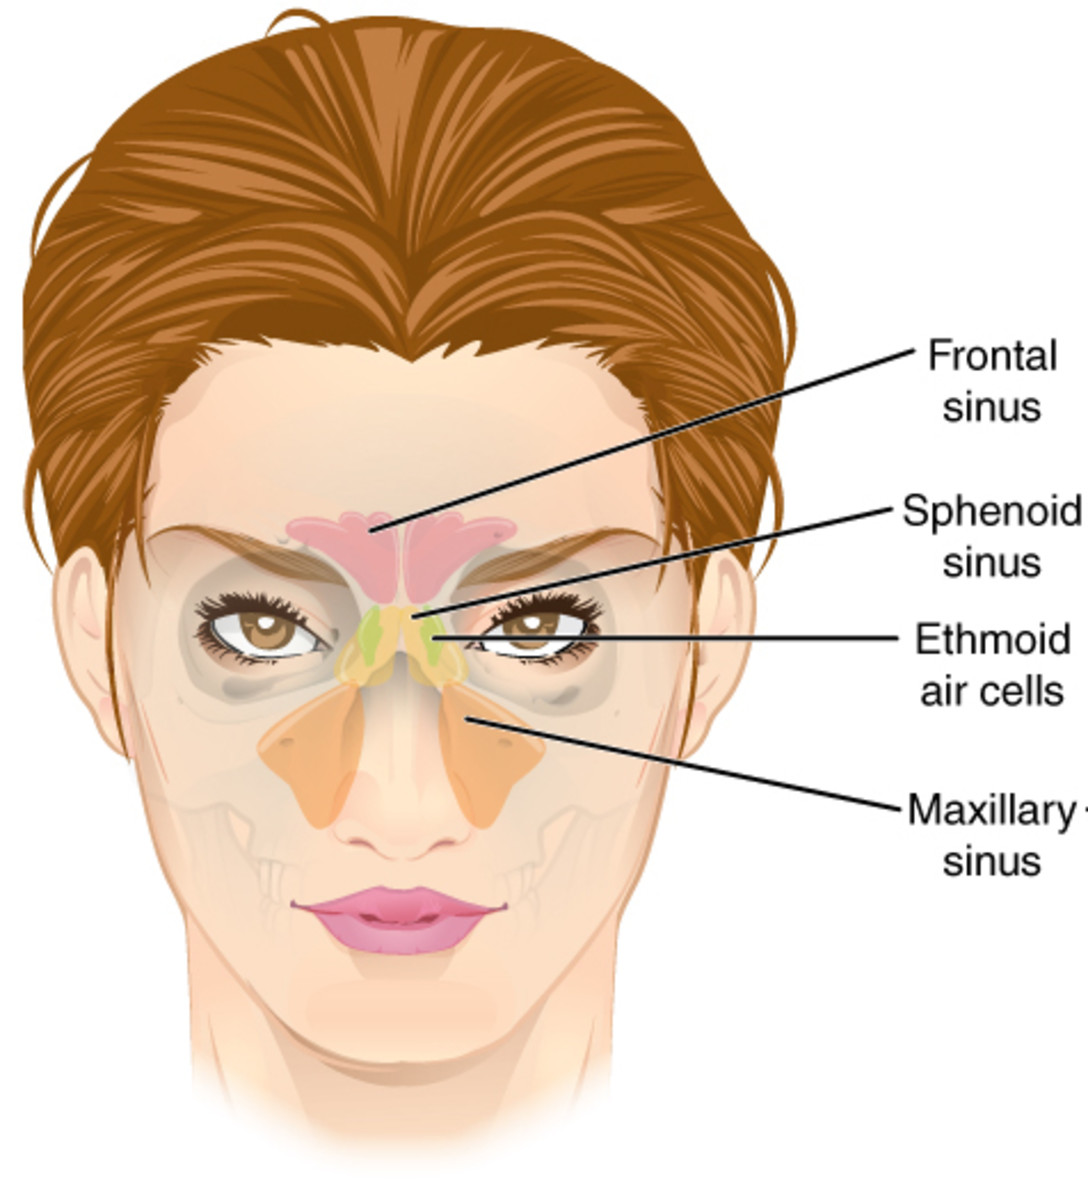 Nasal Sinuses that can be blocked.